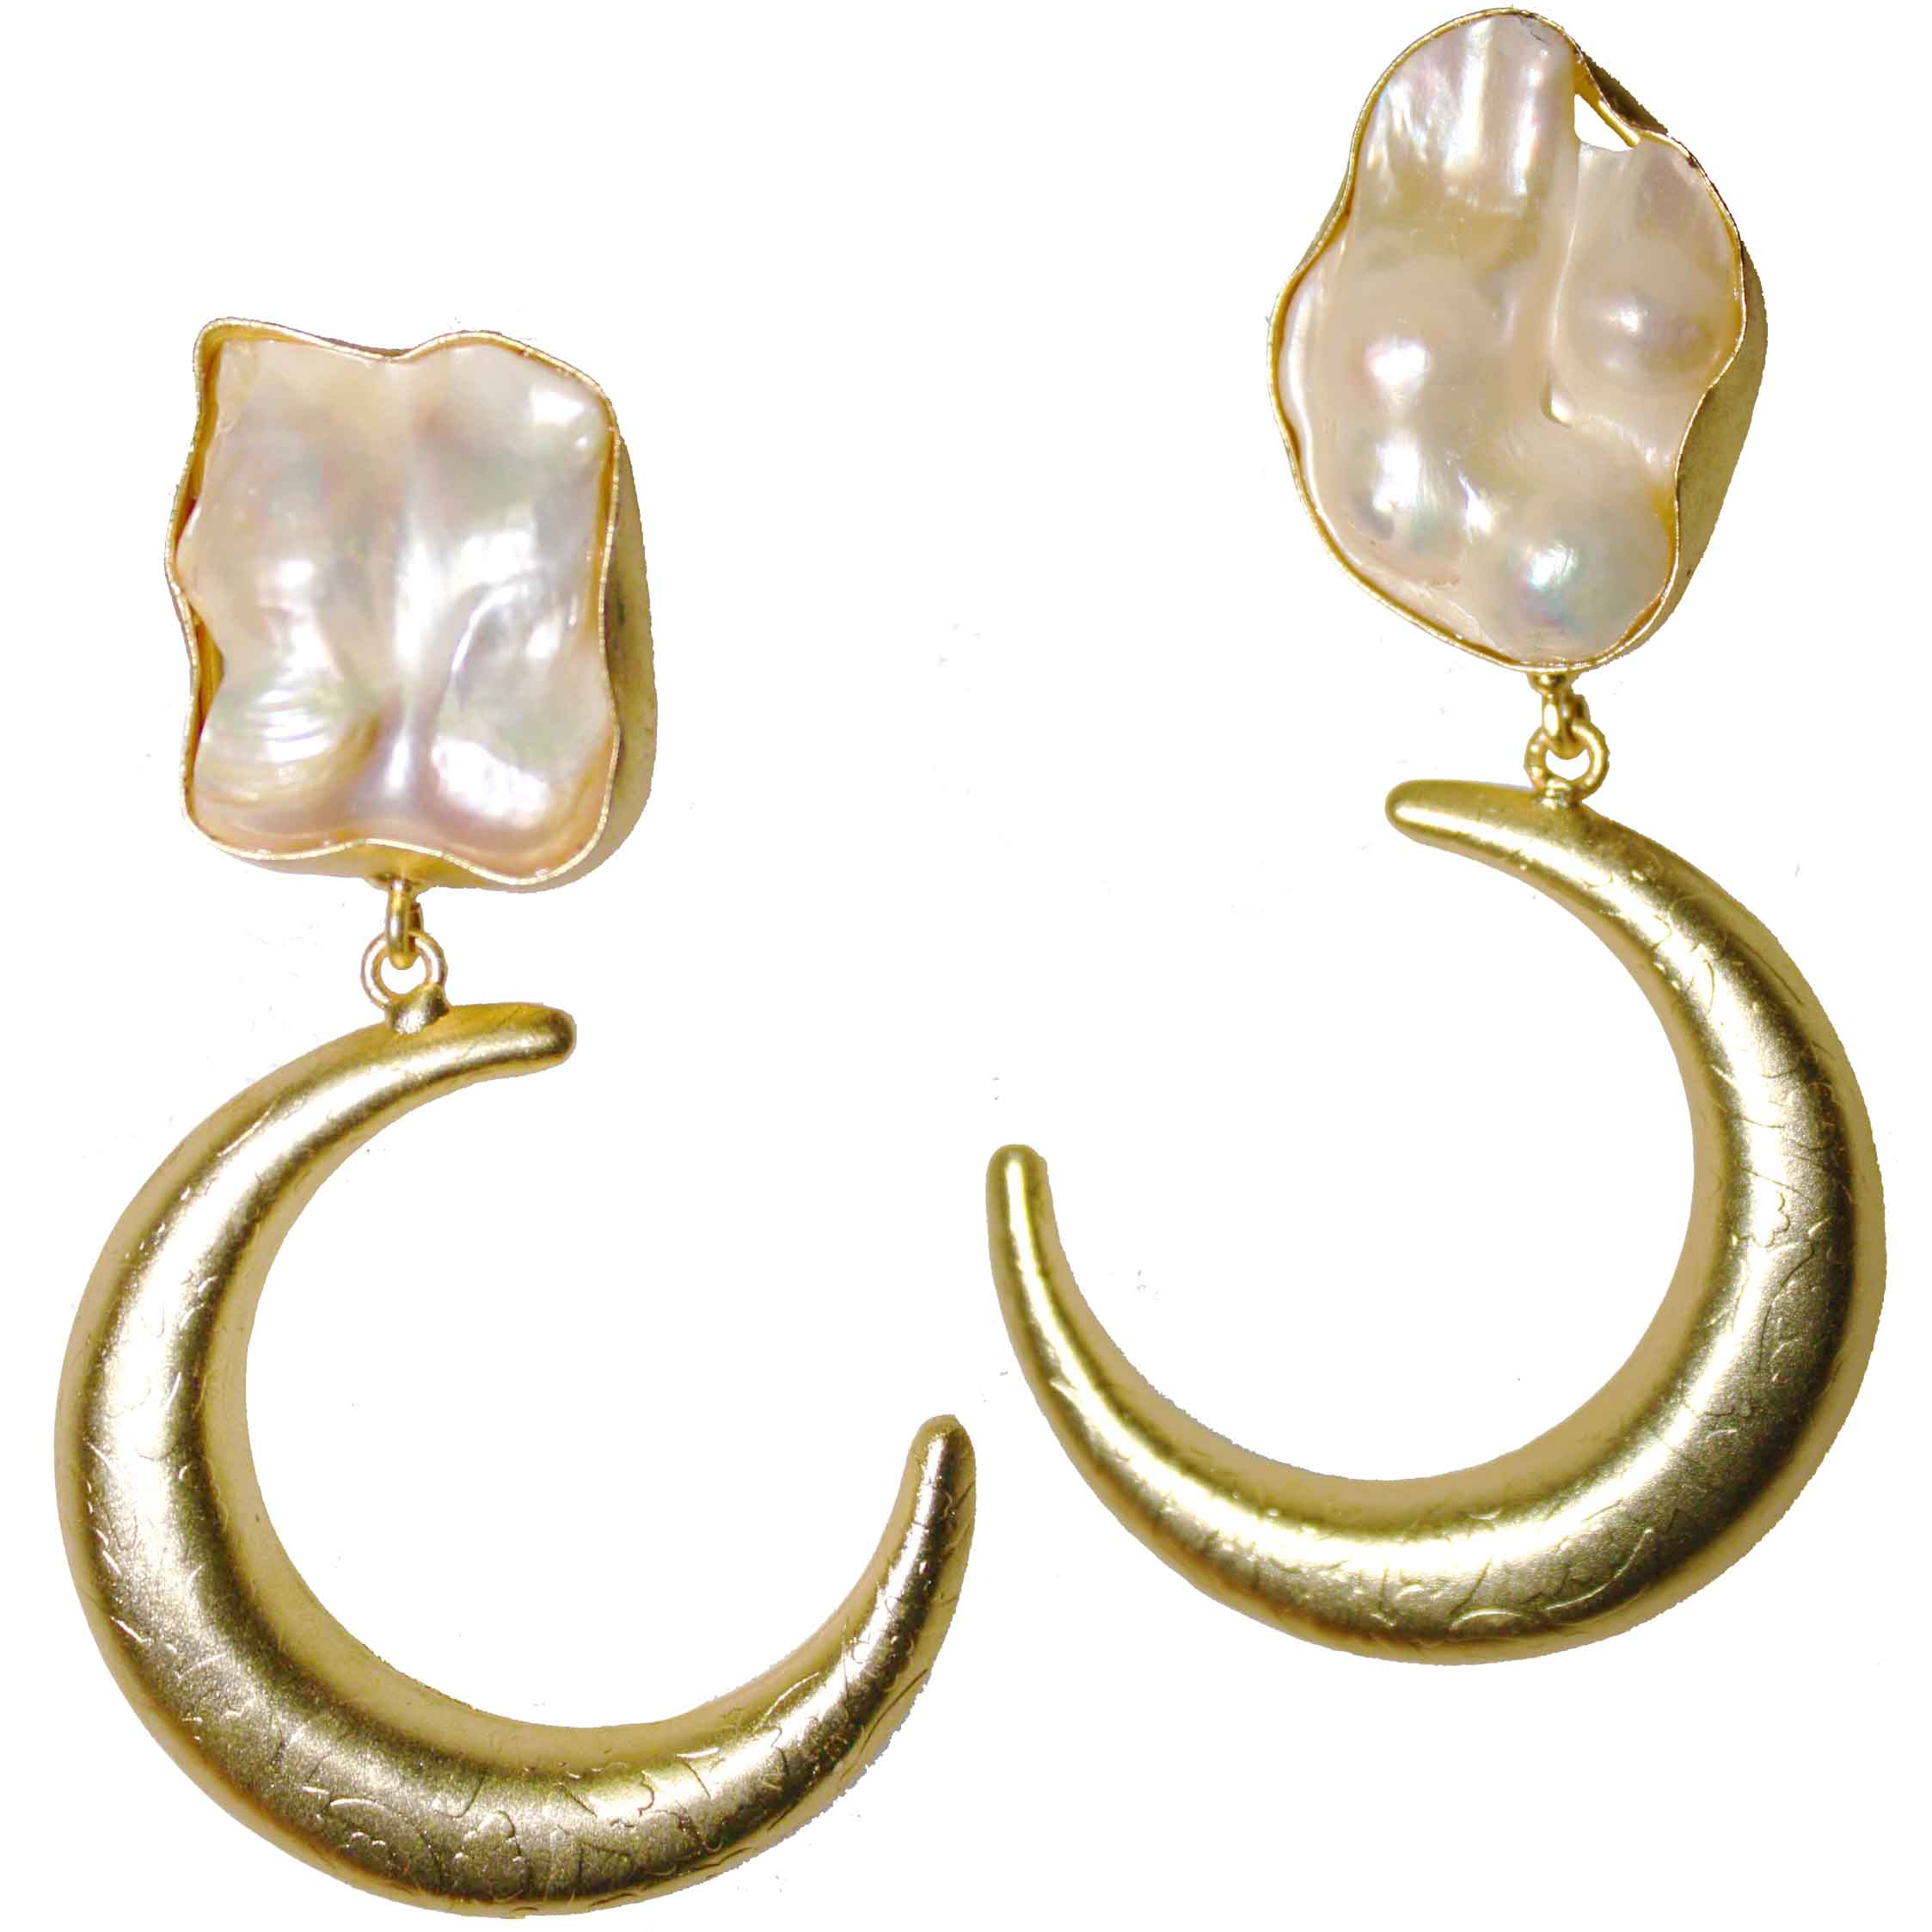 earrings product werner gold fleischer moon